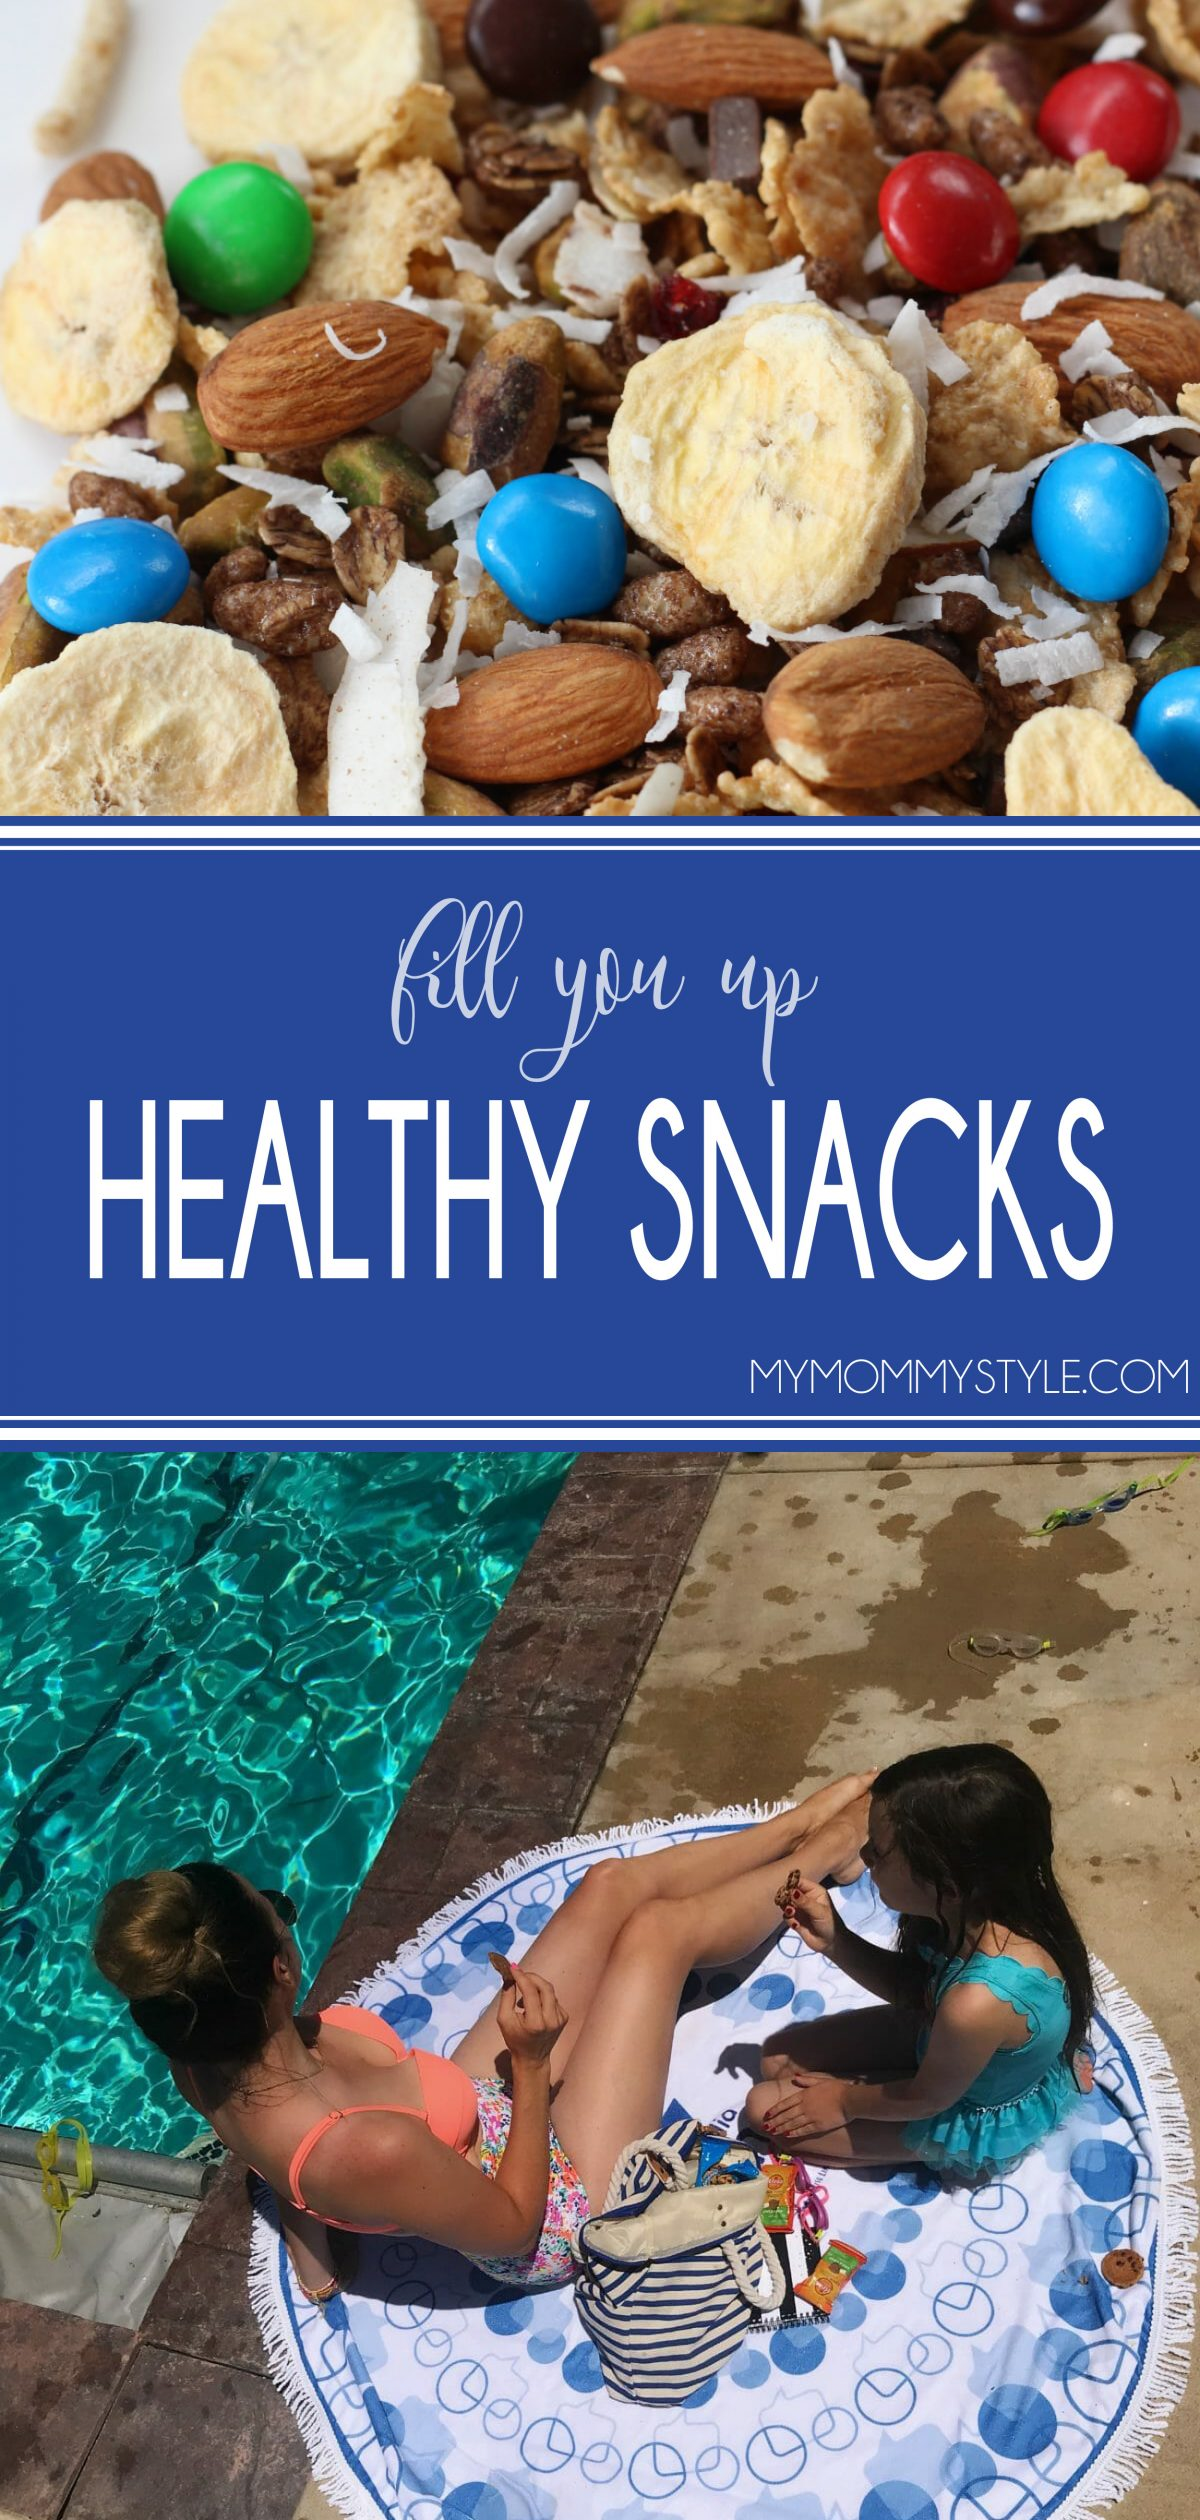 Healthy snacking doesn't need to be tricky. If you have ever found yourself snacking on something you wish you hadn't, it is most likely that you forgot to take the time to pack snacks for YOU! Here are snacks that will fill you up without making you feel heavy or the least bit of regret! via @mymommystyle